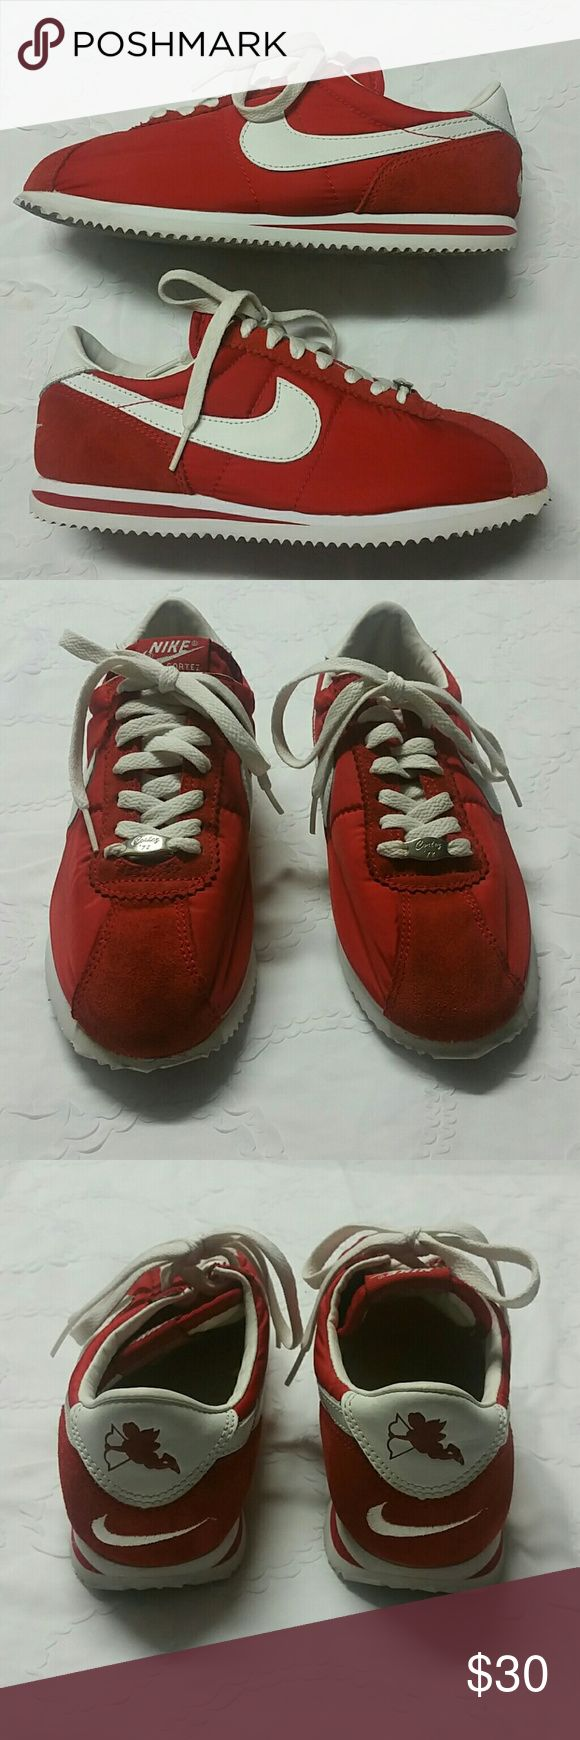 Nike Women's Classic Cortez  PRE-OWNED Red and White Nike Cortez Sneakers Size 8. Still in great condition, with just a small mark in the front (see pic). Reasonable offers, no trade. Nike Shoes Sneakers